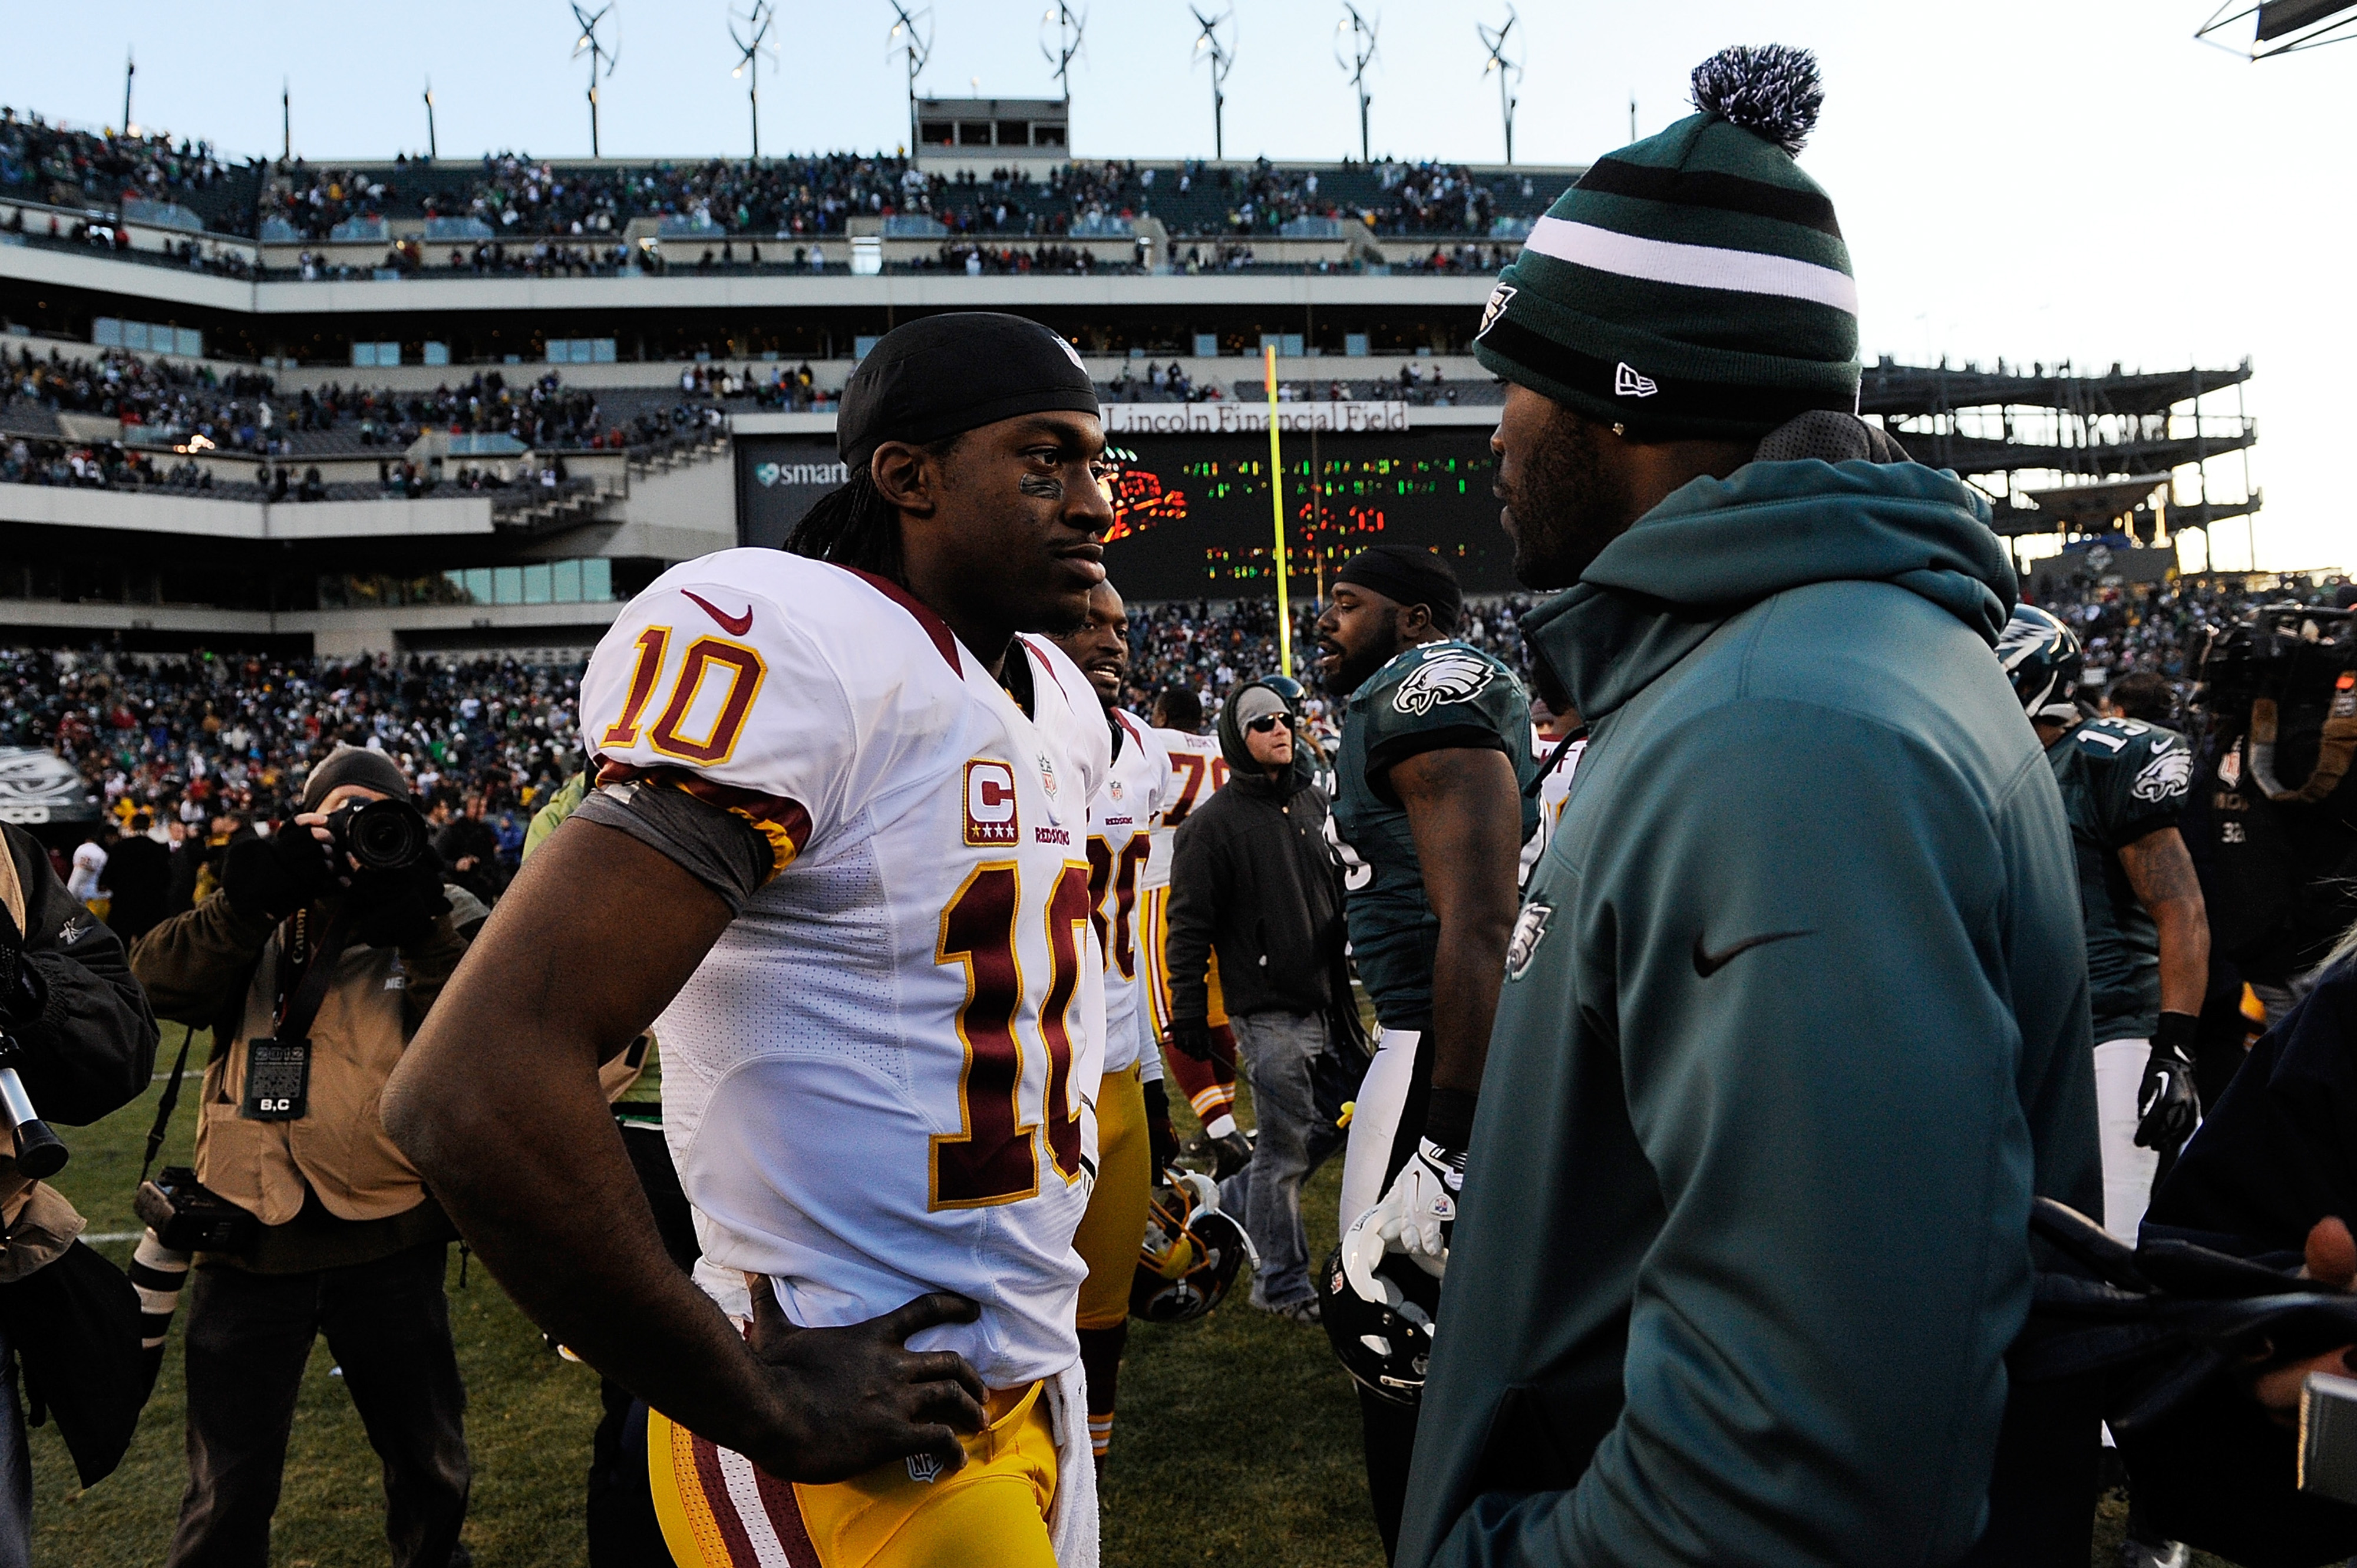 Robert Griffin III and Michael Vick will square off tonight in the first game of Monday Night Football's doubleheader.